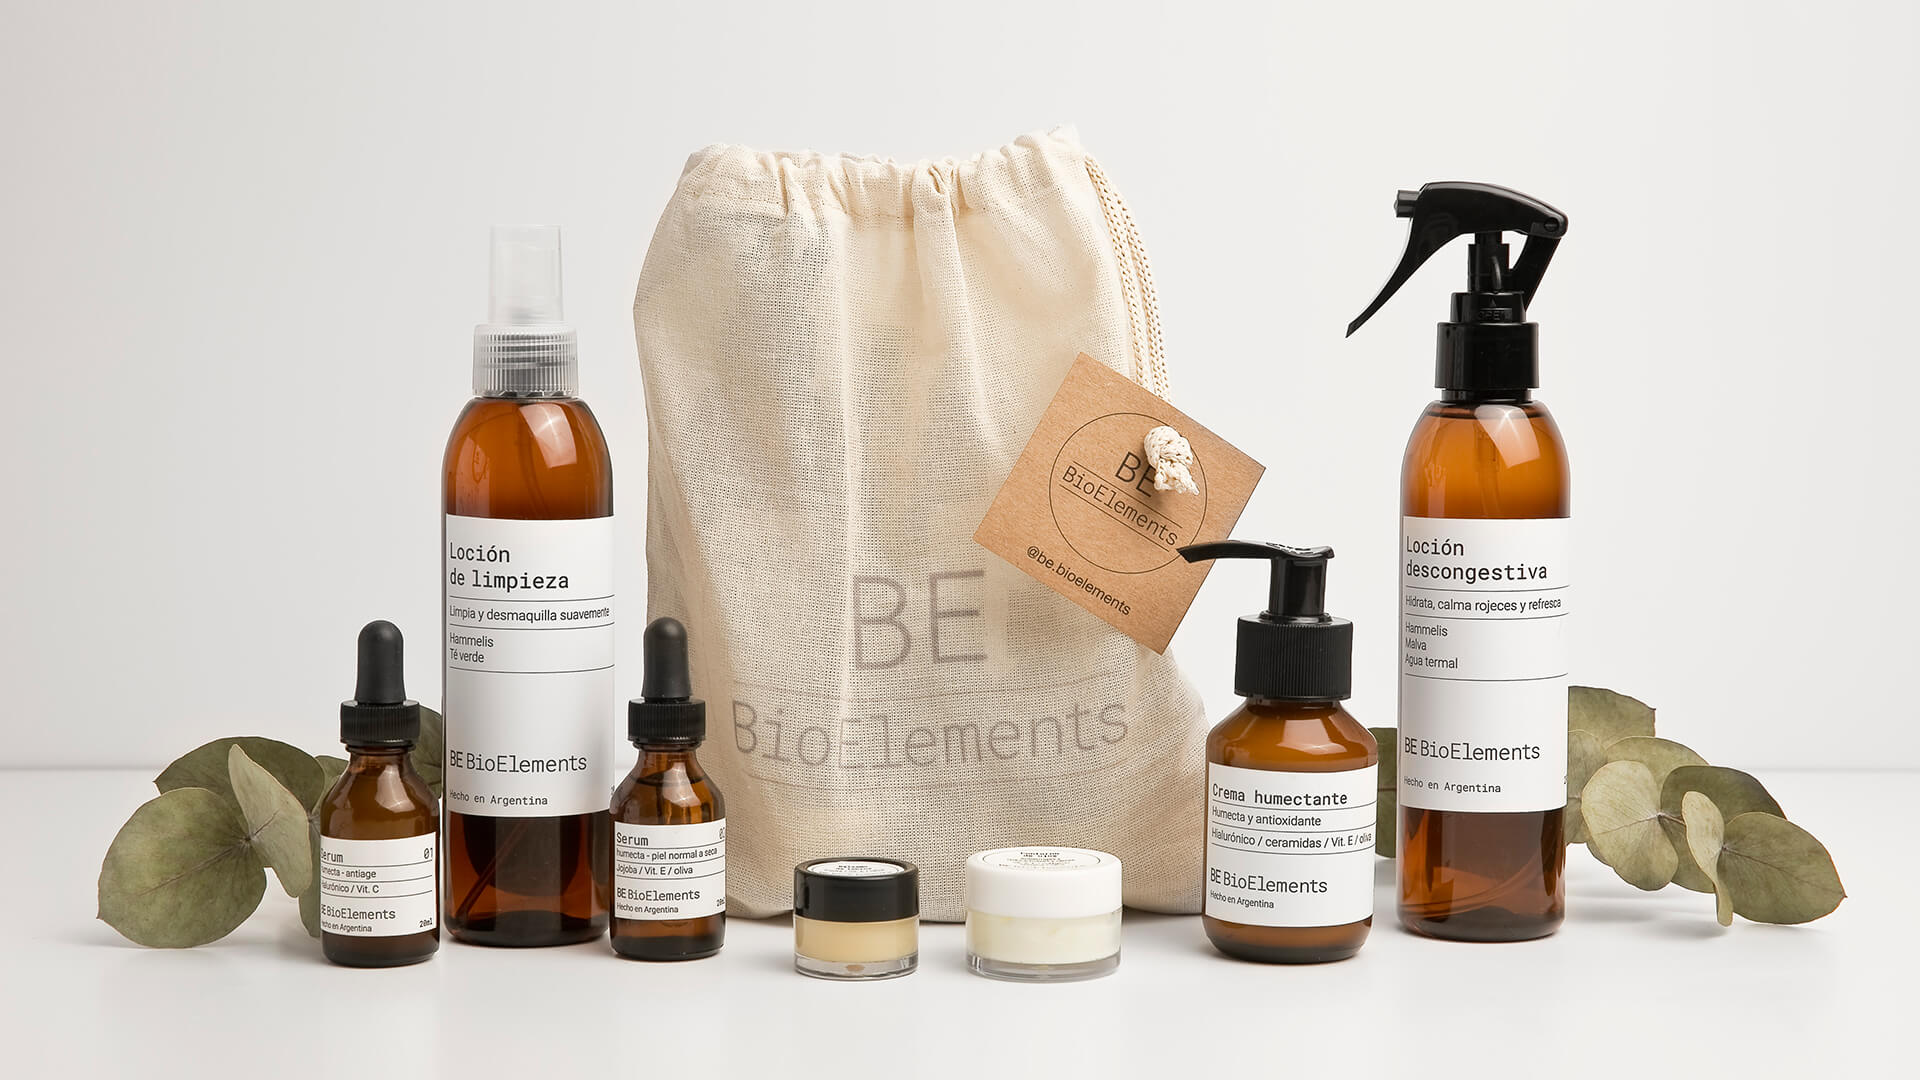 Identity and packaging for BE BioElements skincare cosmetics by FUERA